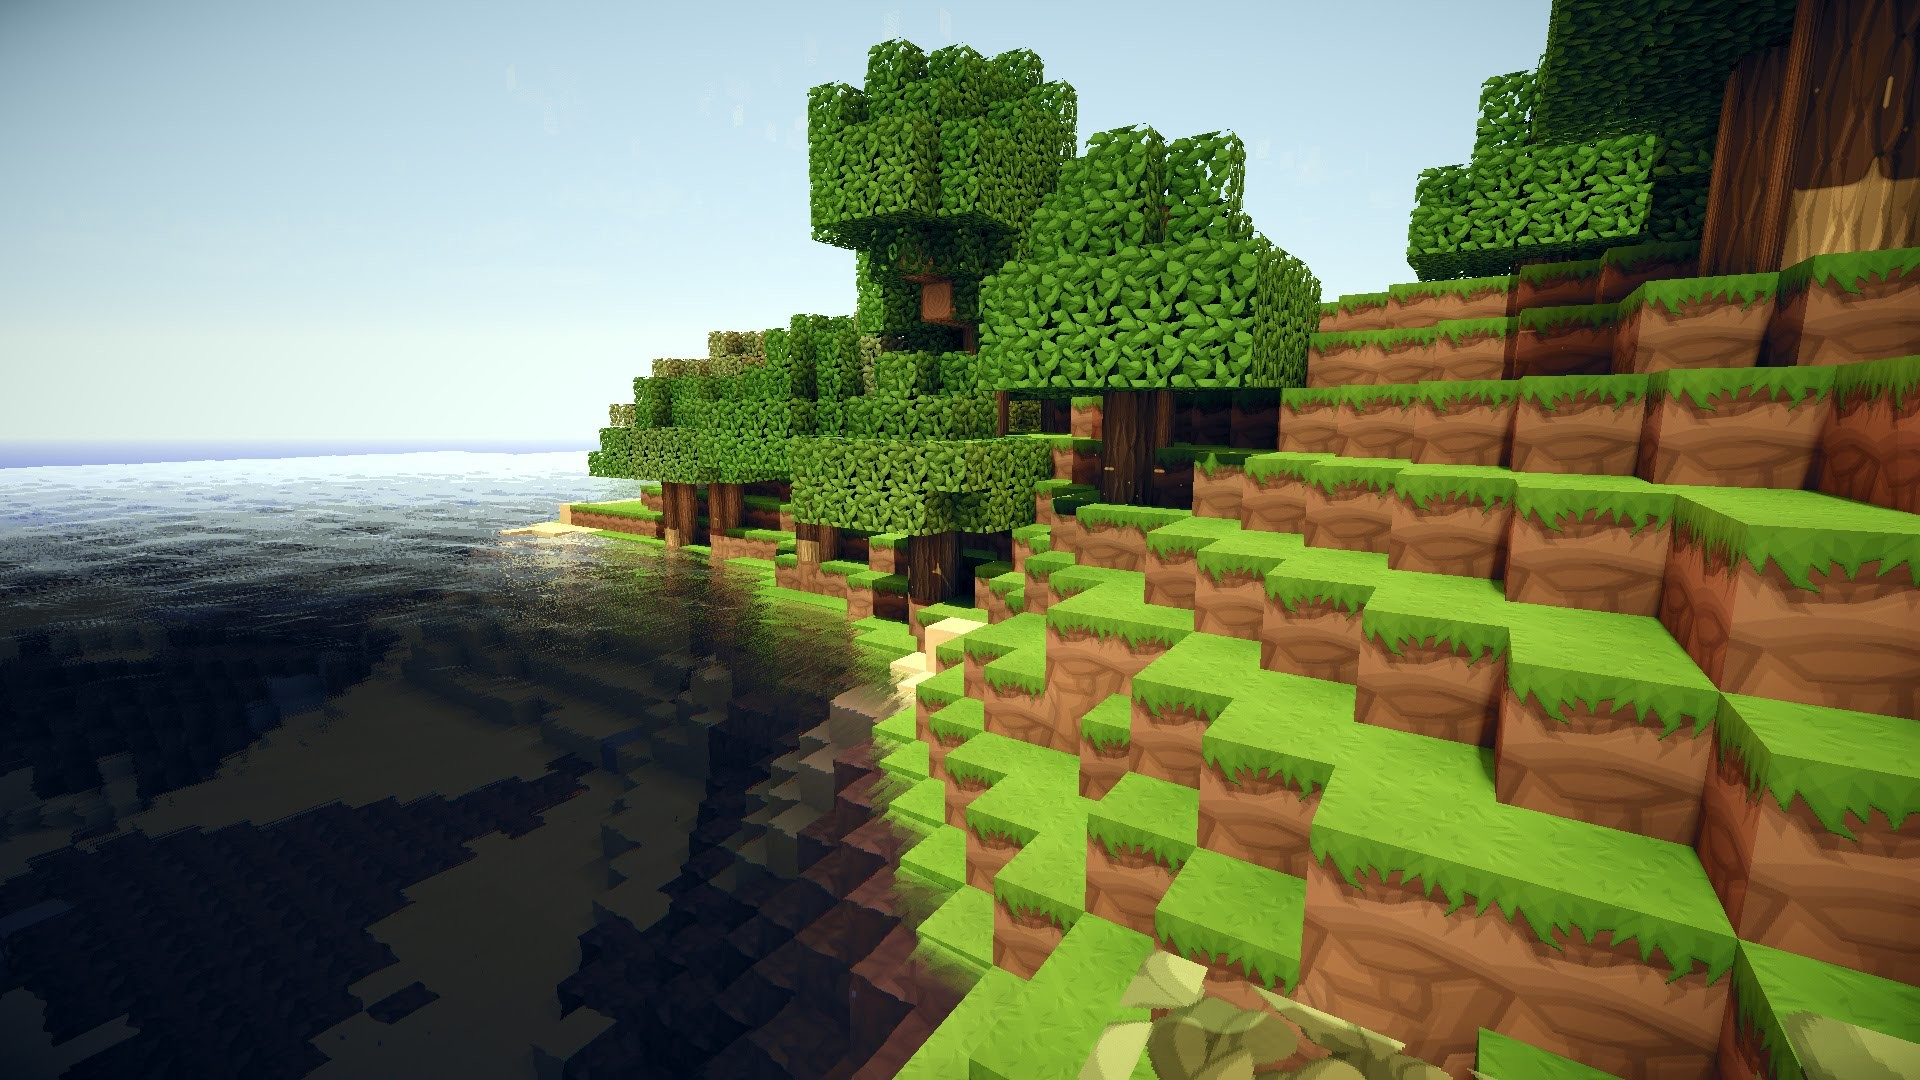 1920x1080 1920x1080 Minecraft Backgrounds Wallpaper | HD Wallpapers | Pinterest | Minecraft wallpaper, Wallpaper and Wallpapers android